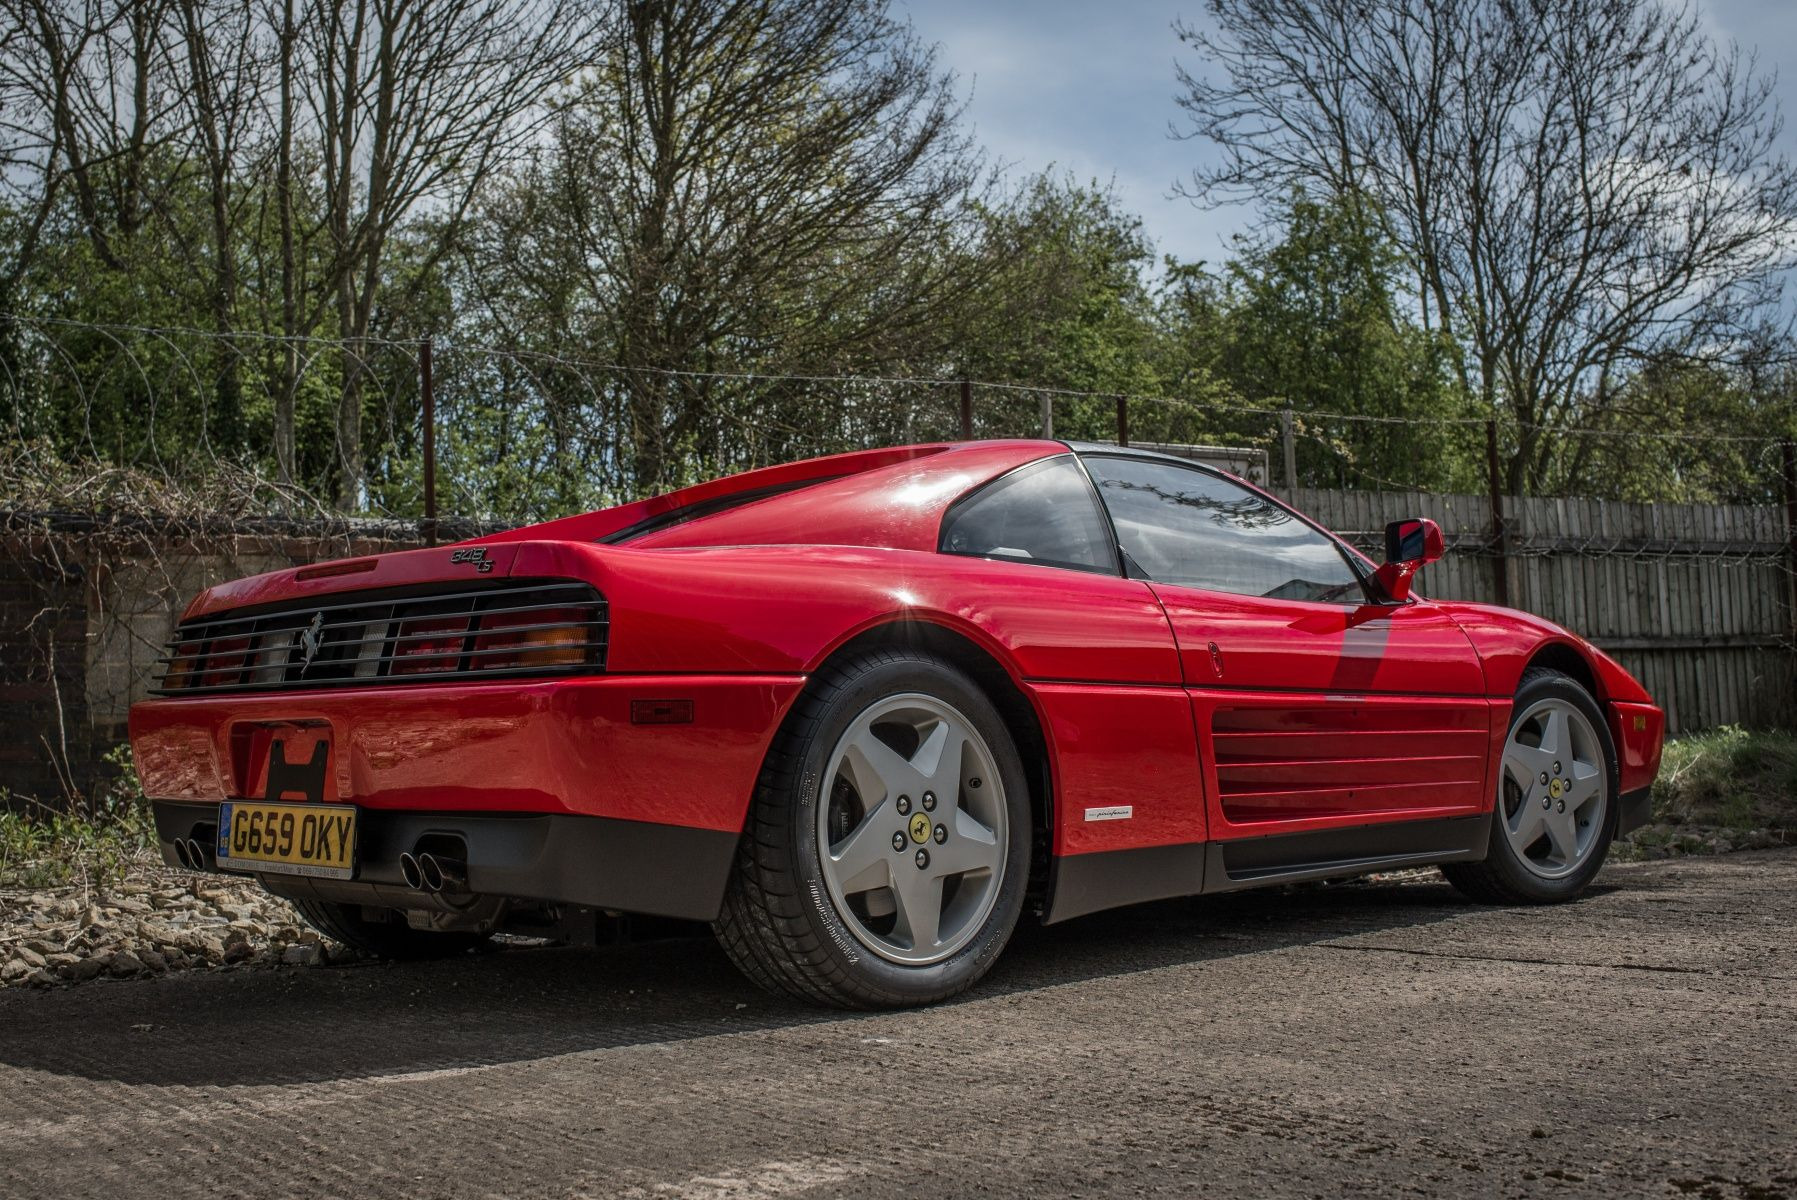 1989 ferrari 348 classic driver market everything cool 1989 ferrari 348 classic driver market vanachro Images